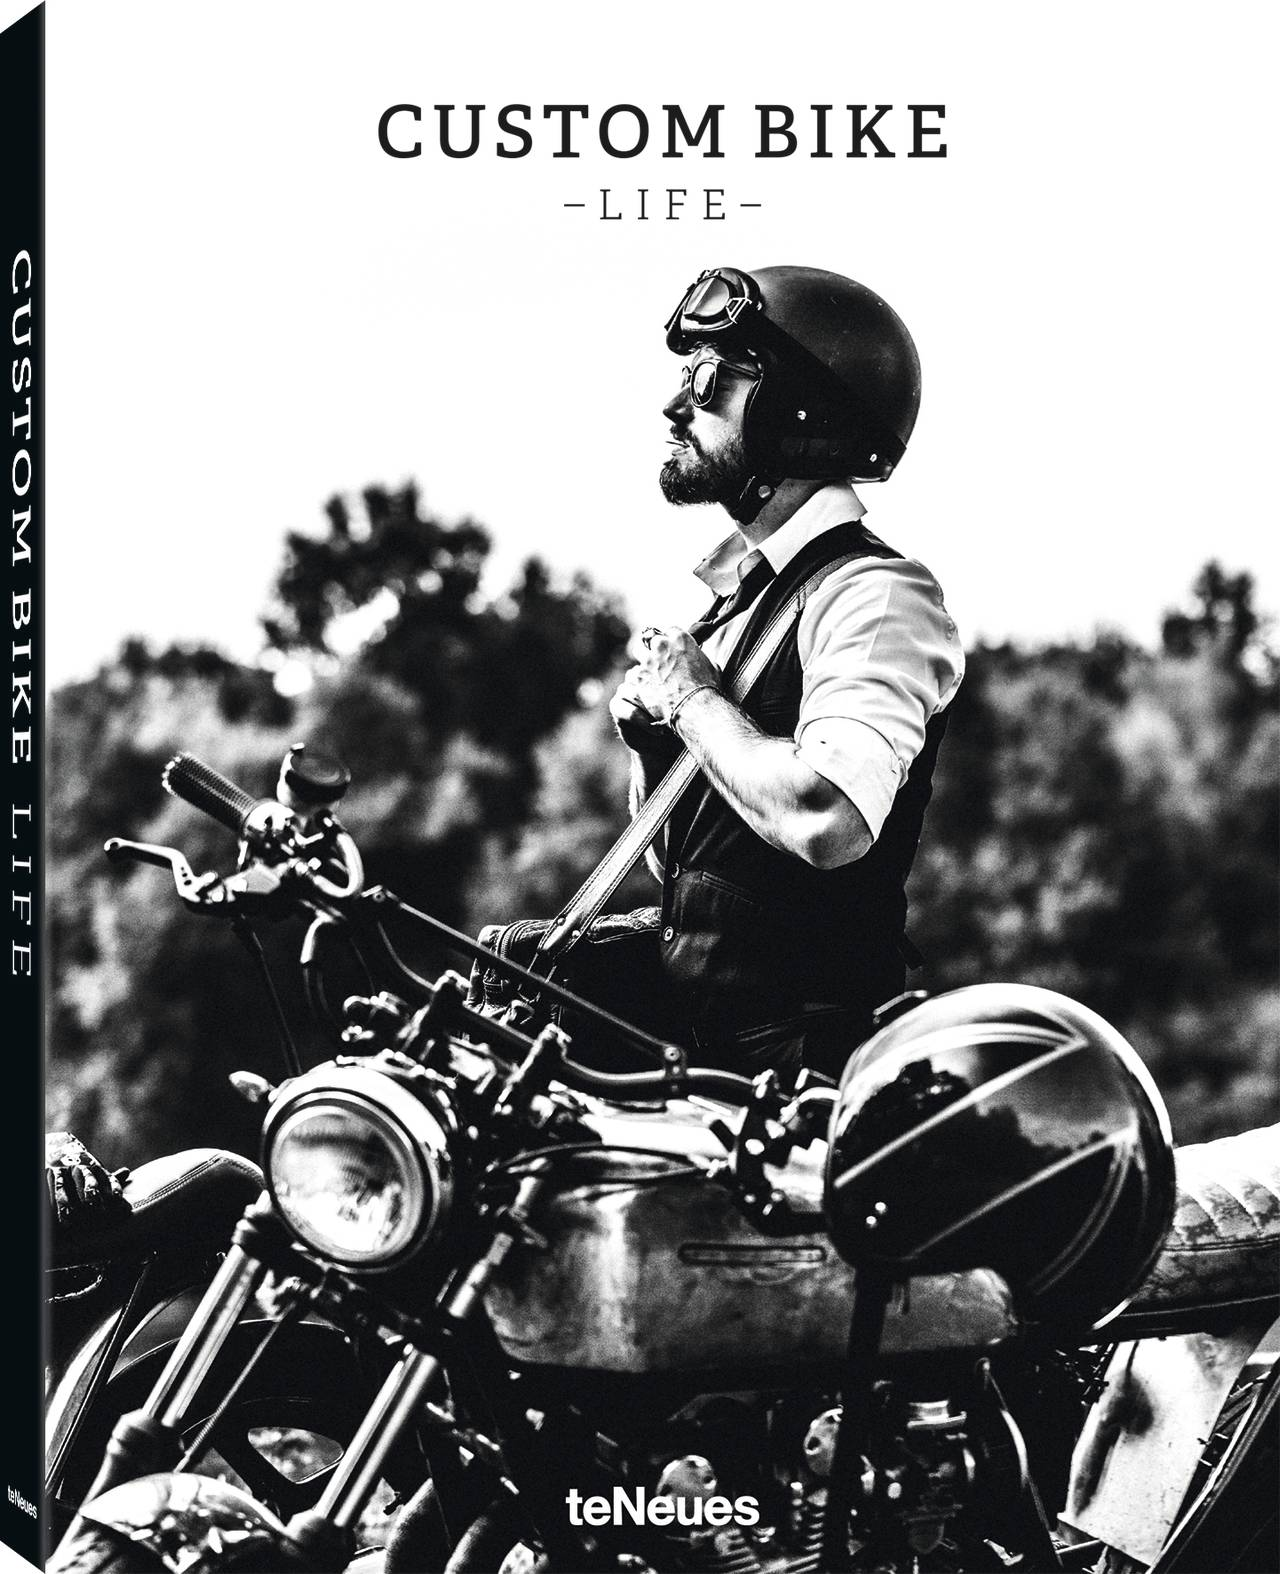 © Custom Bike Life, published by teNeues, € 49,90, www.teneues.com. Distinguished Gentleman's Ride, Photo © Laurent Nivalle